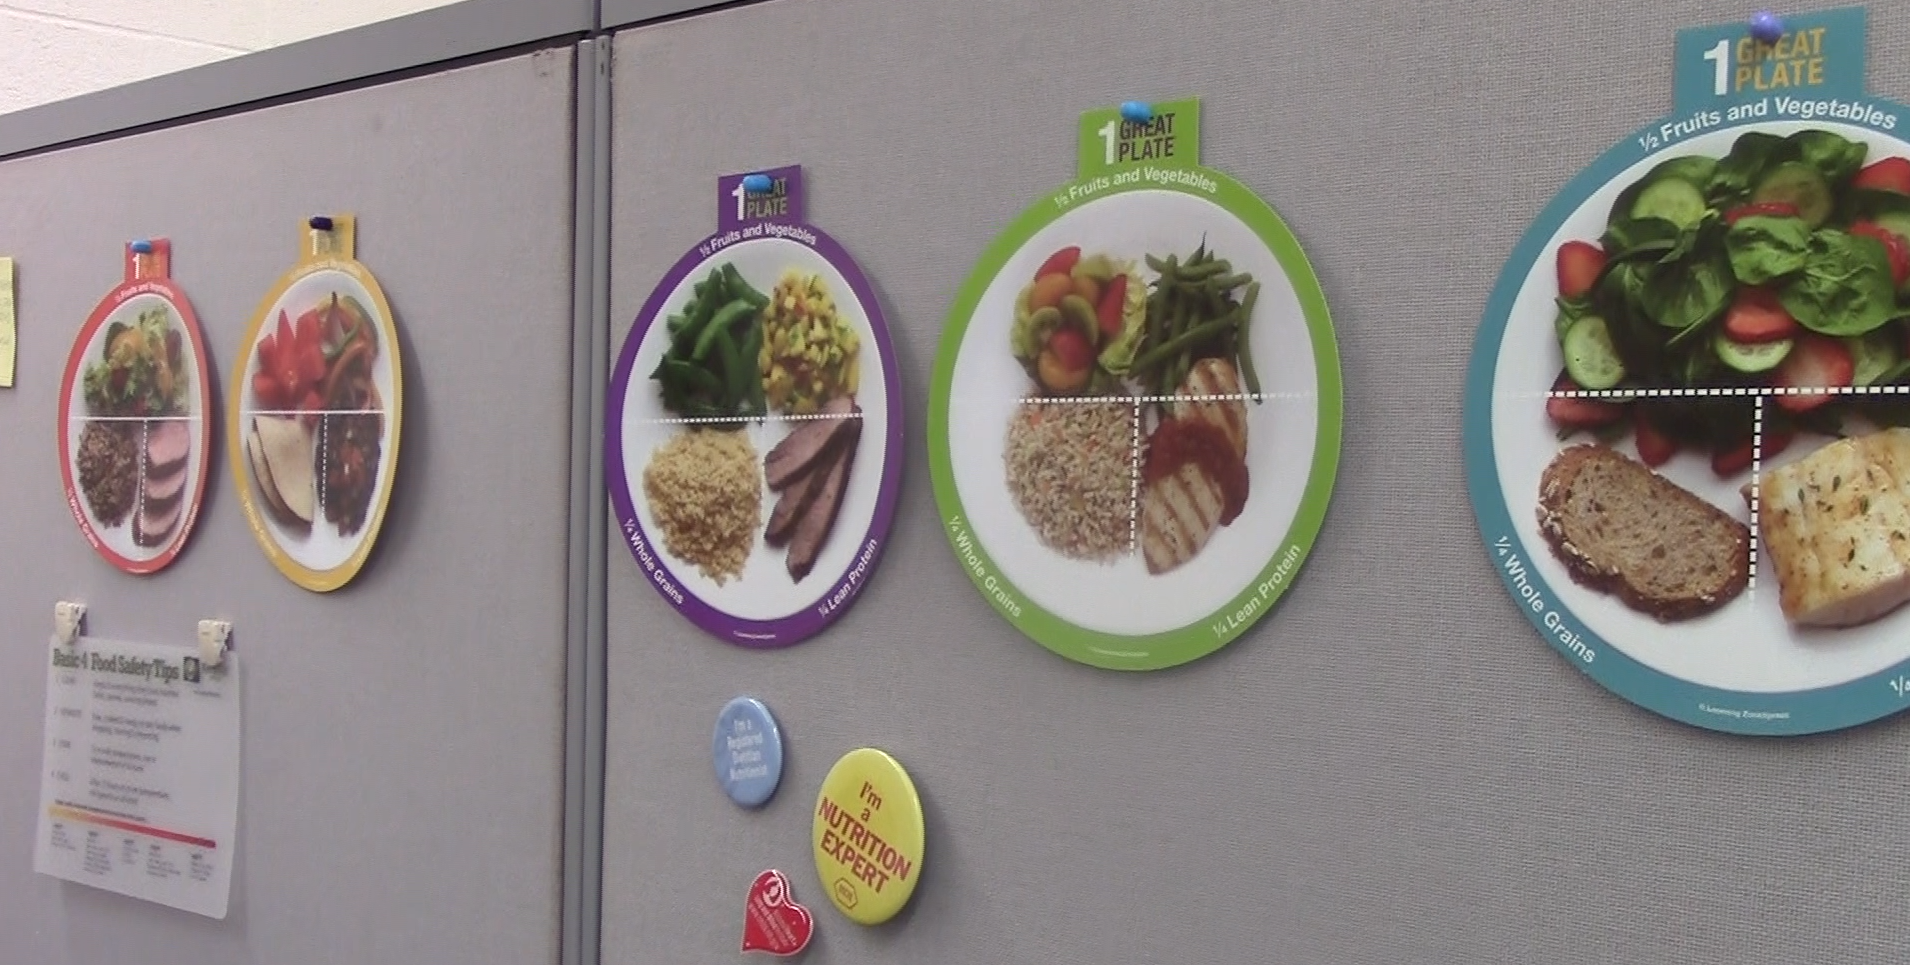 In room 200 in Nixon Hall, students can seek advice and diet tips from nutrition instructors.